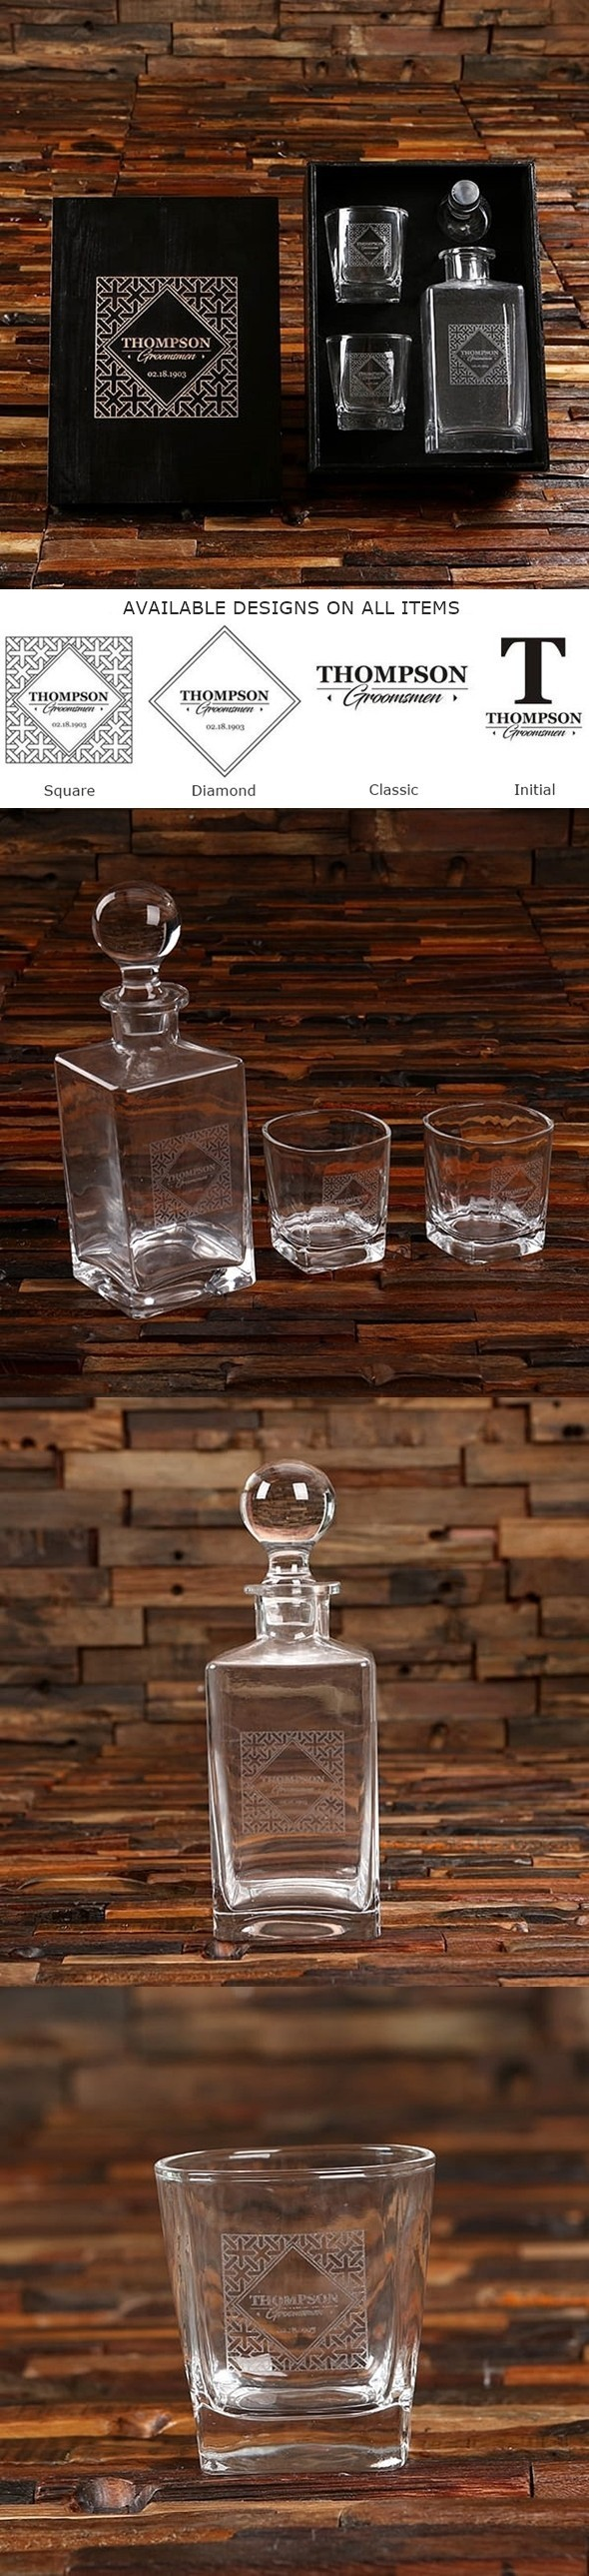 Personalized Whiskey Decanter & Rocks Glasses in Black Finish Wood Box